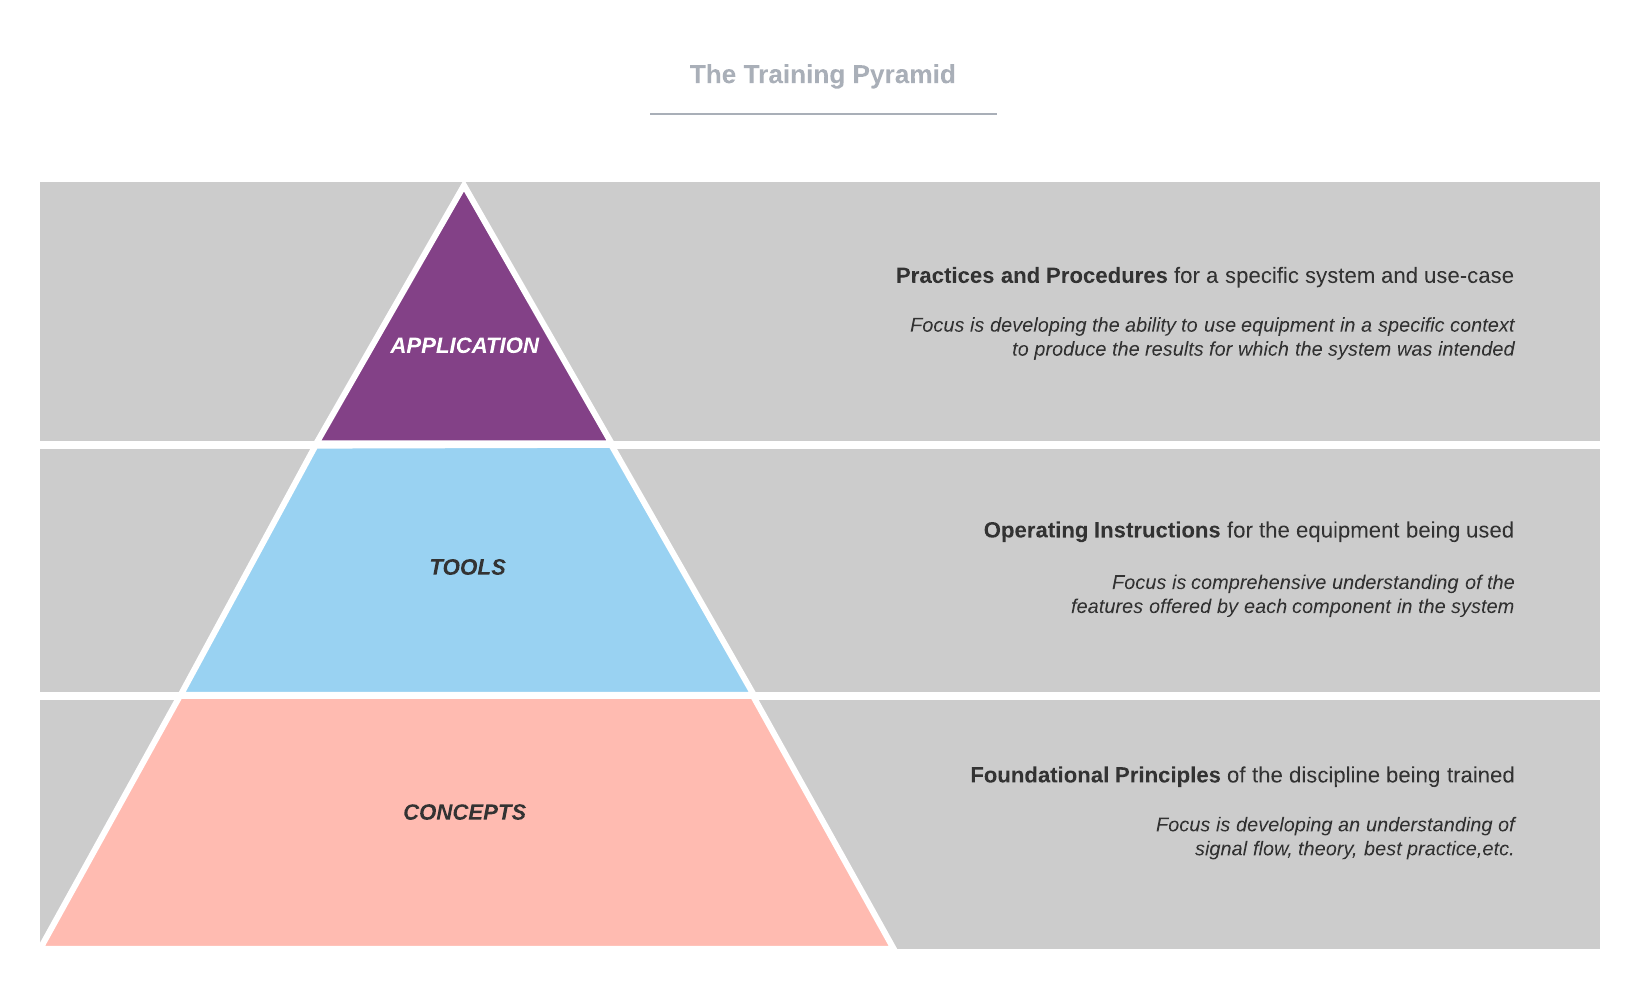 The Training Pyramid